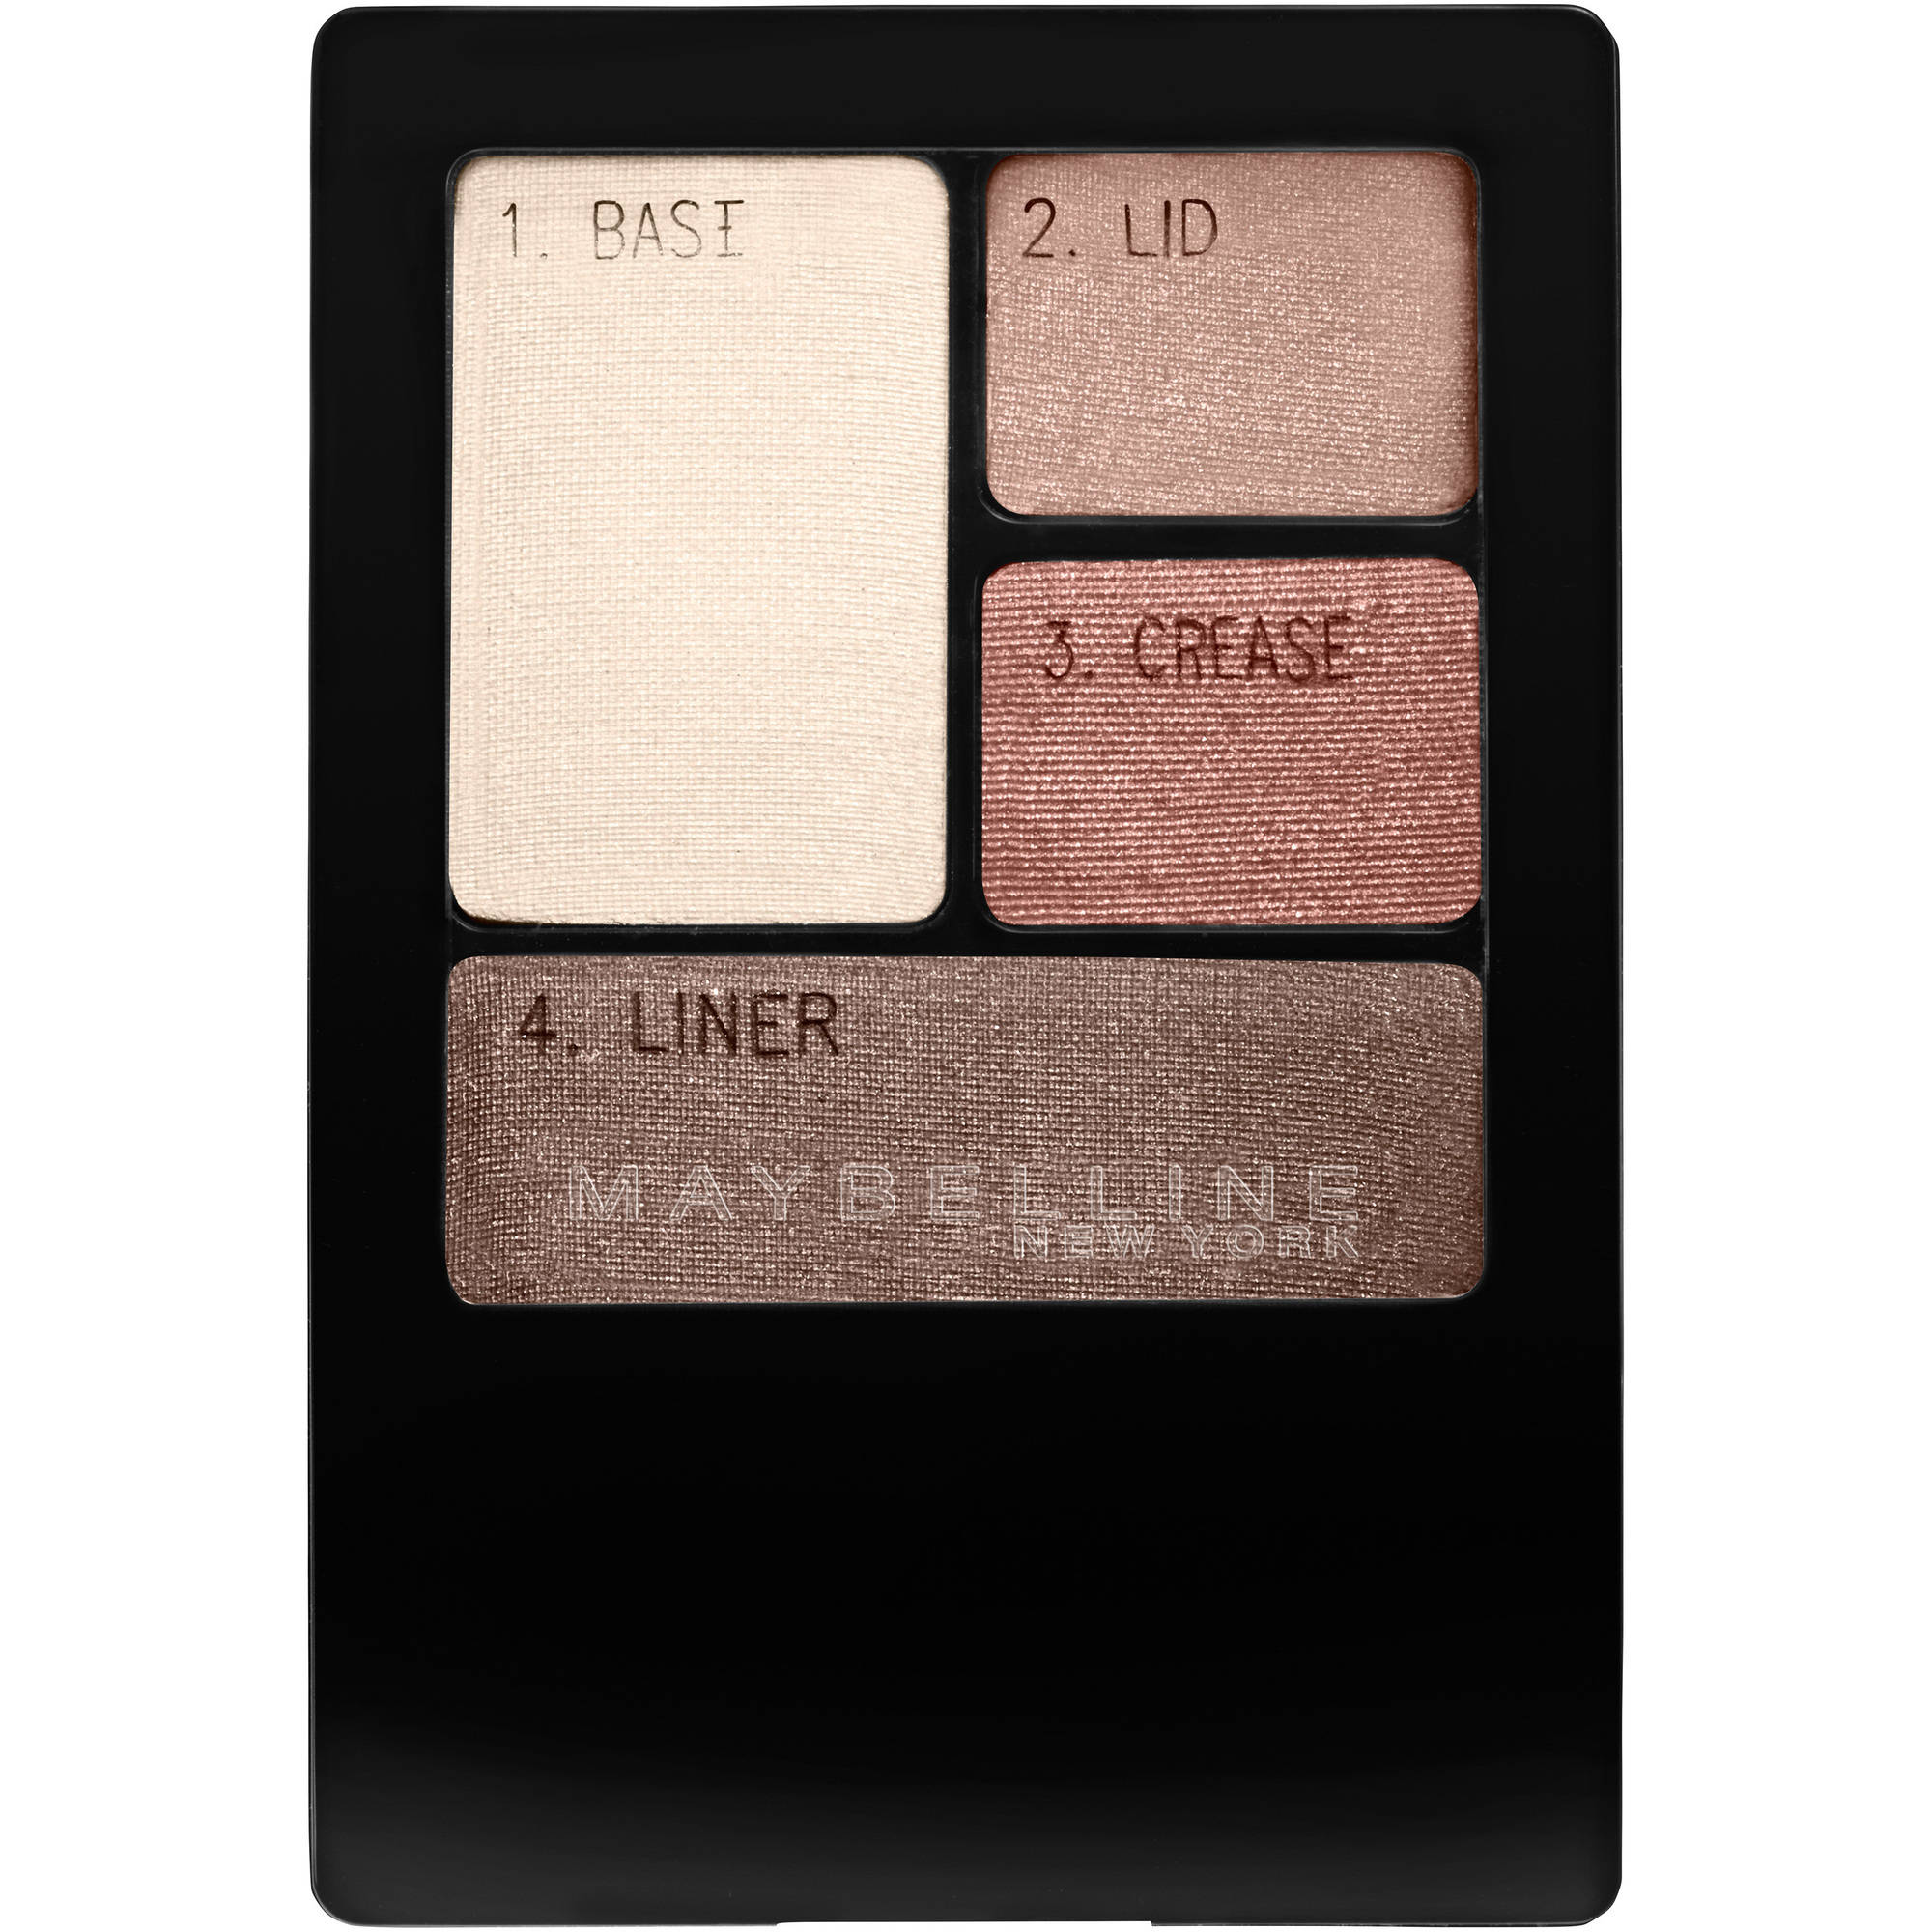 Maybelline New York Expert Wear Eyeshadow Quads, Natural Smokes, 0.17 oz